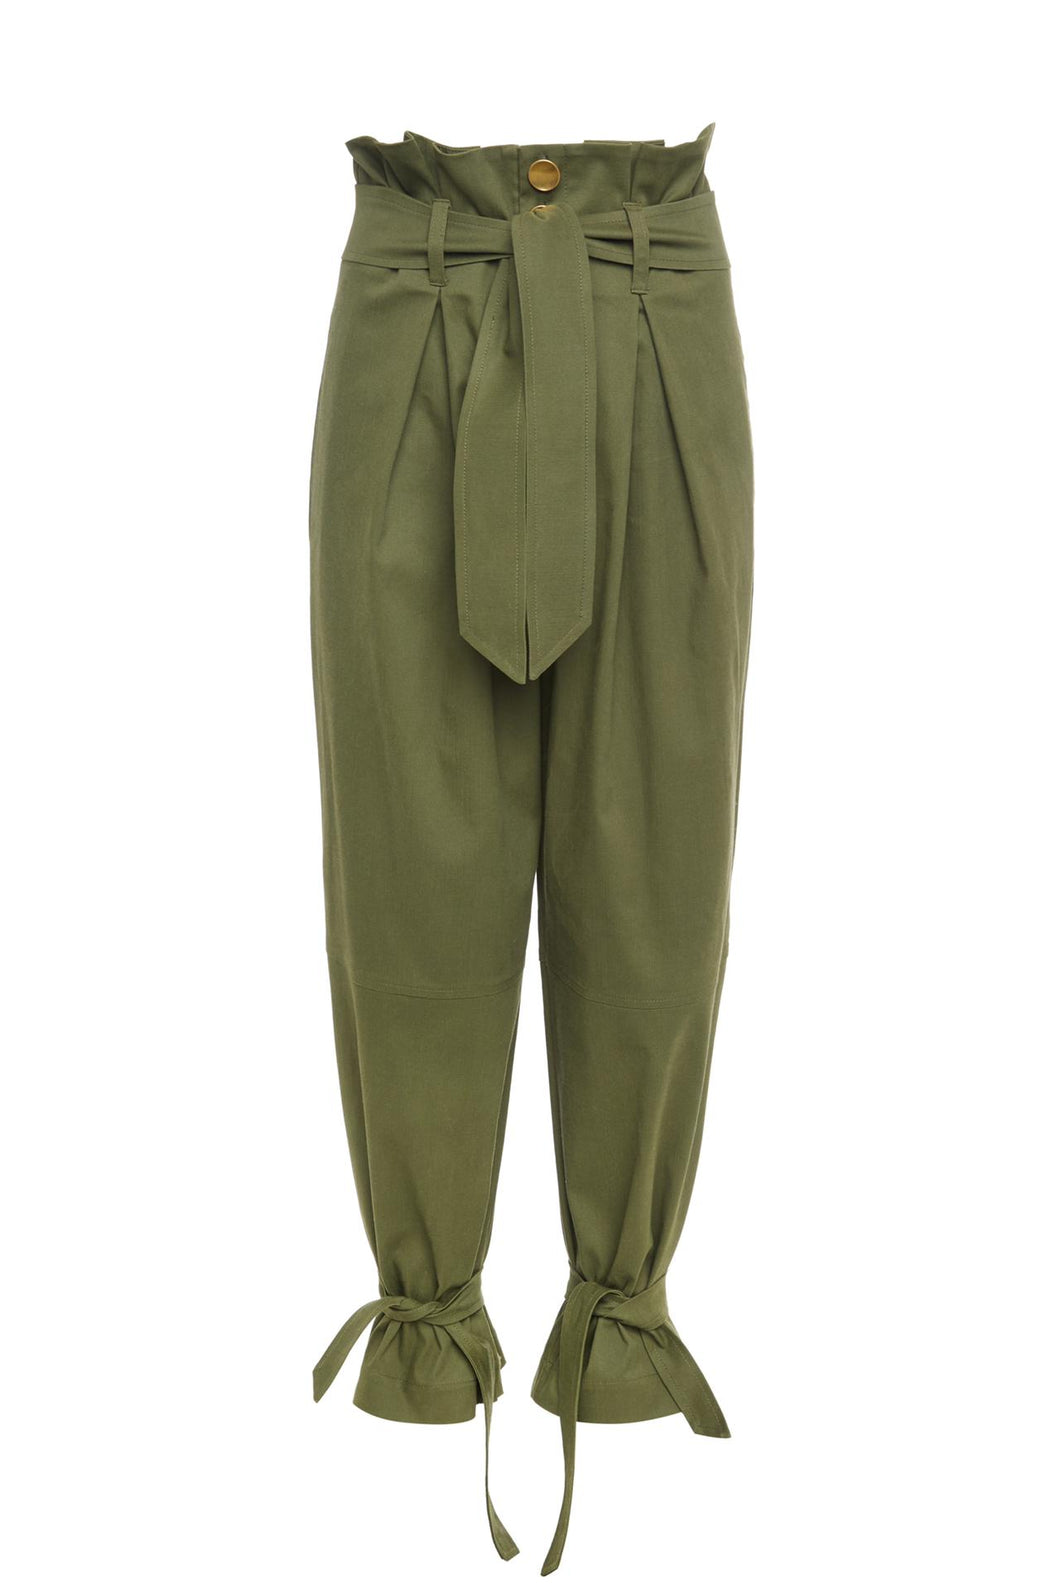 Green High Waist Belted Trousers